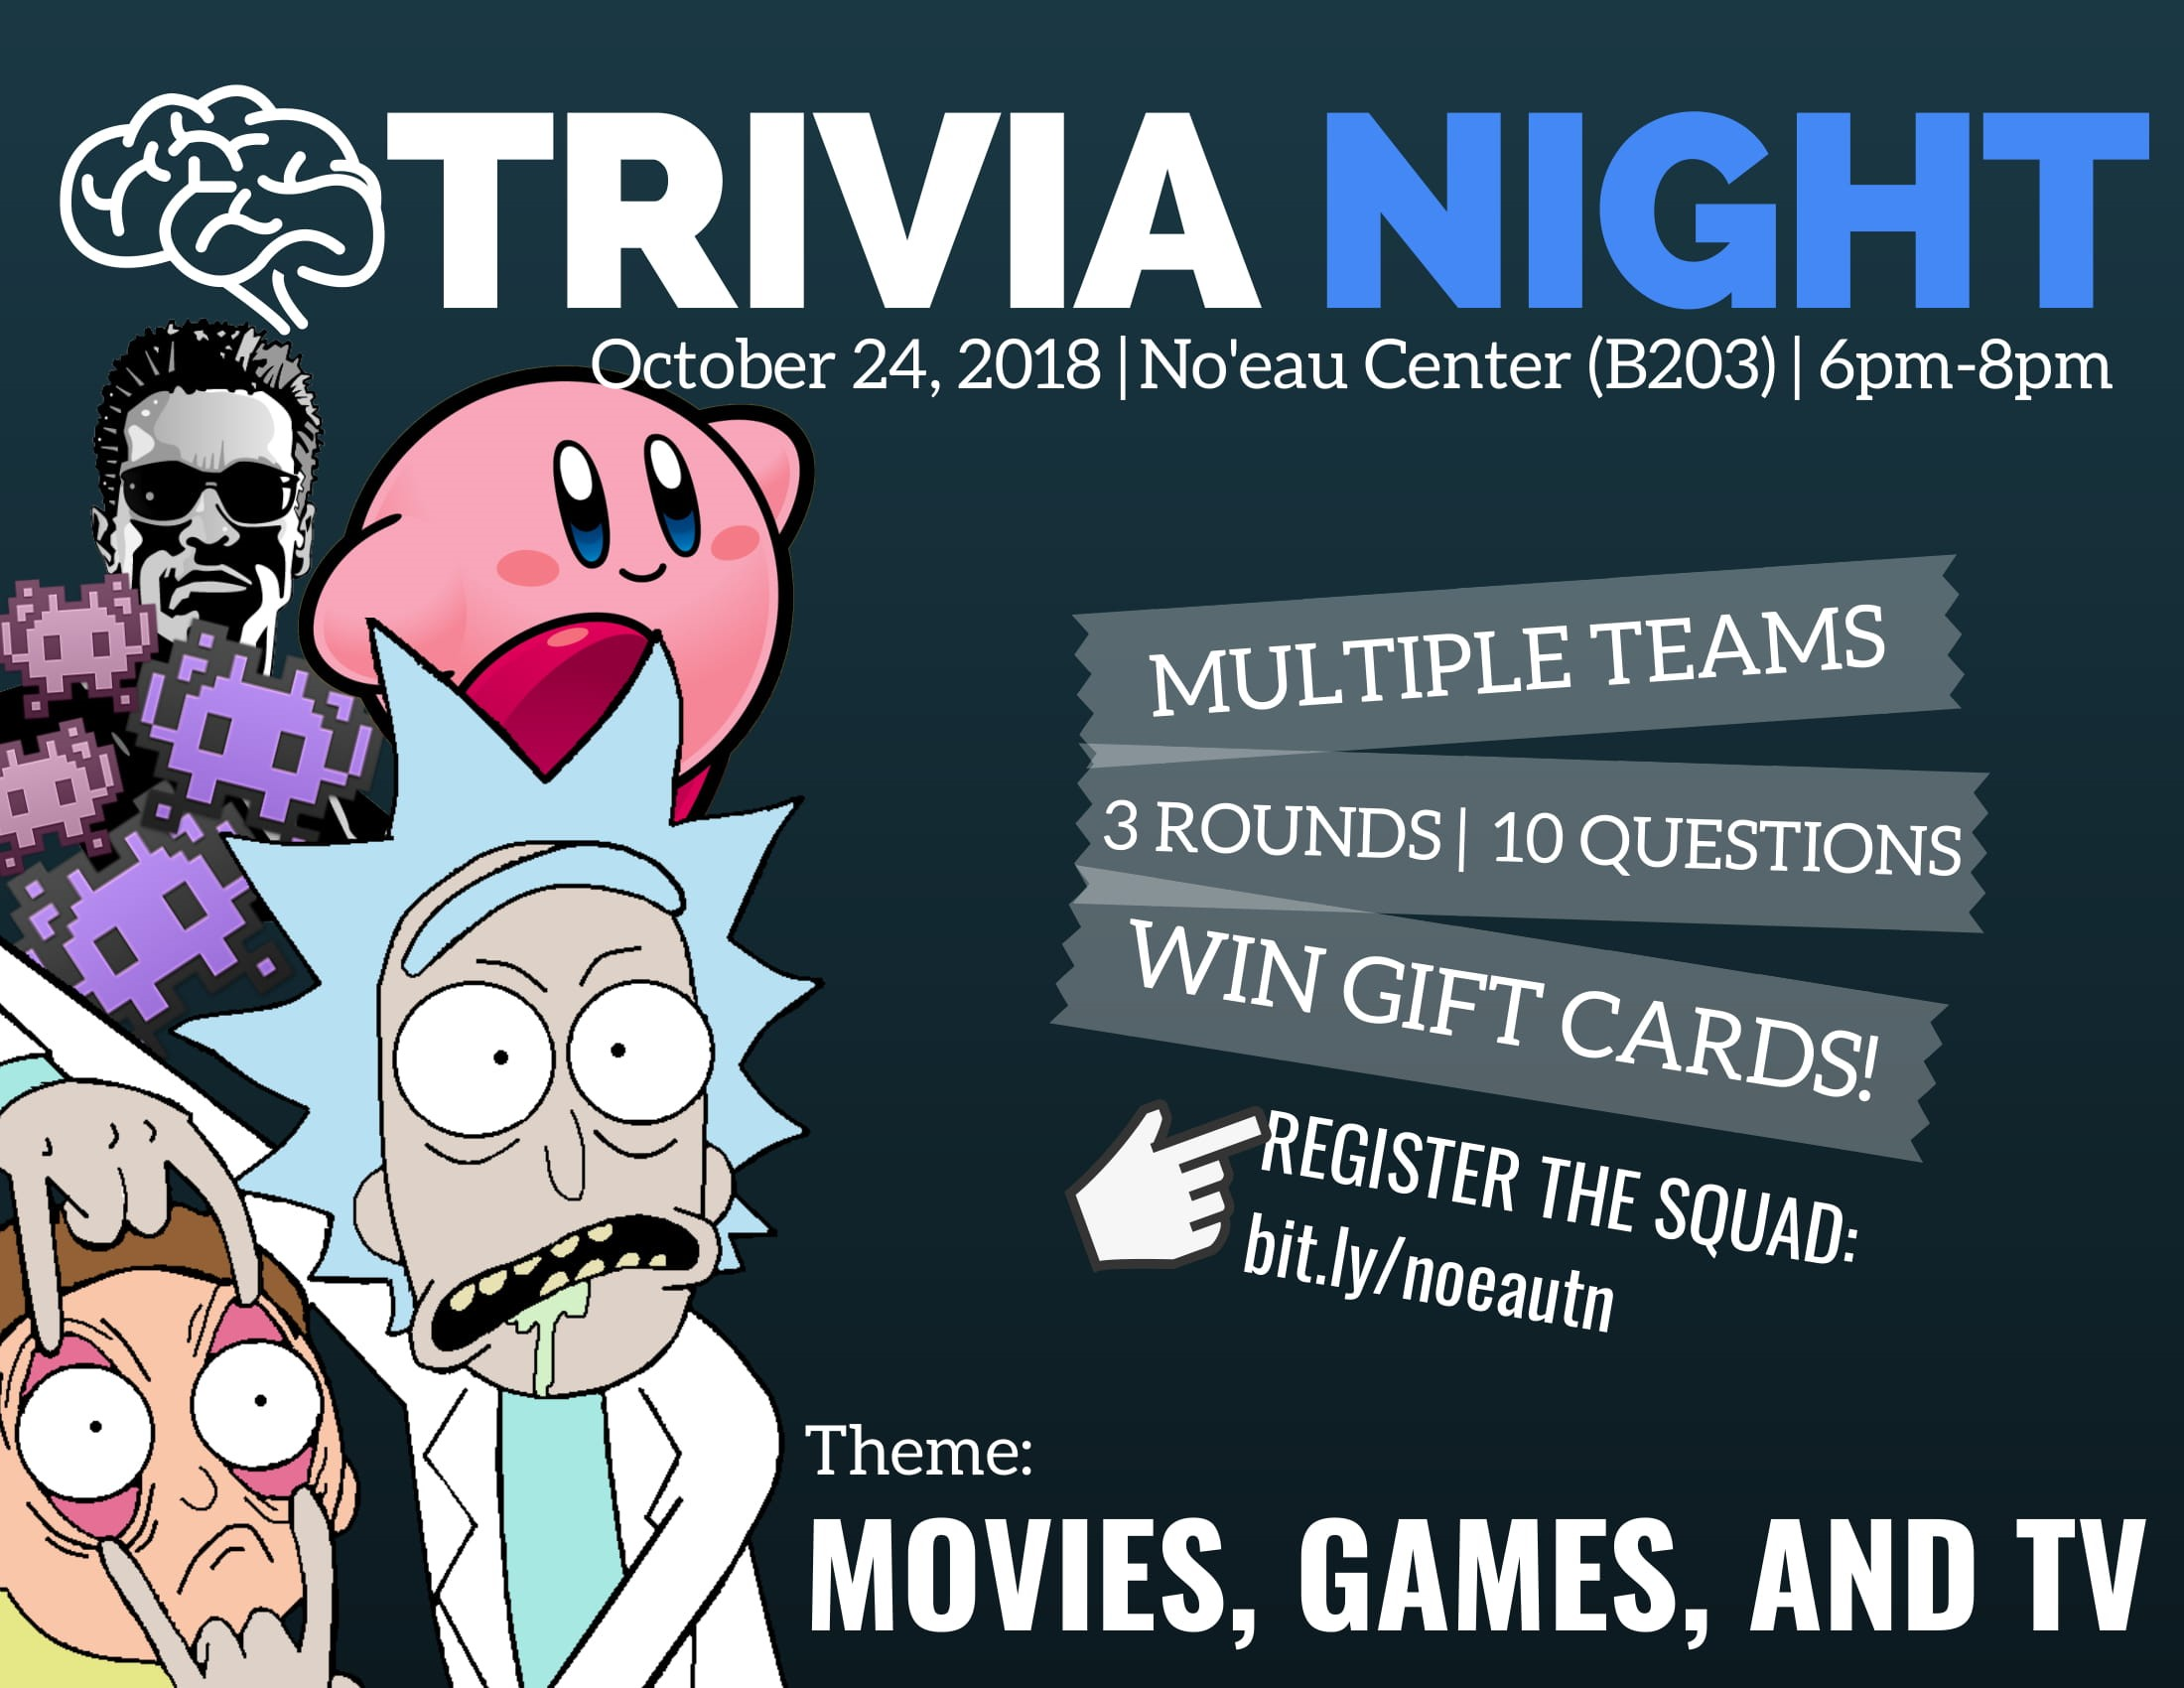 Flier for Trivial Night that contains same information as is in the article